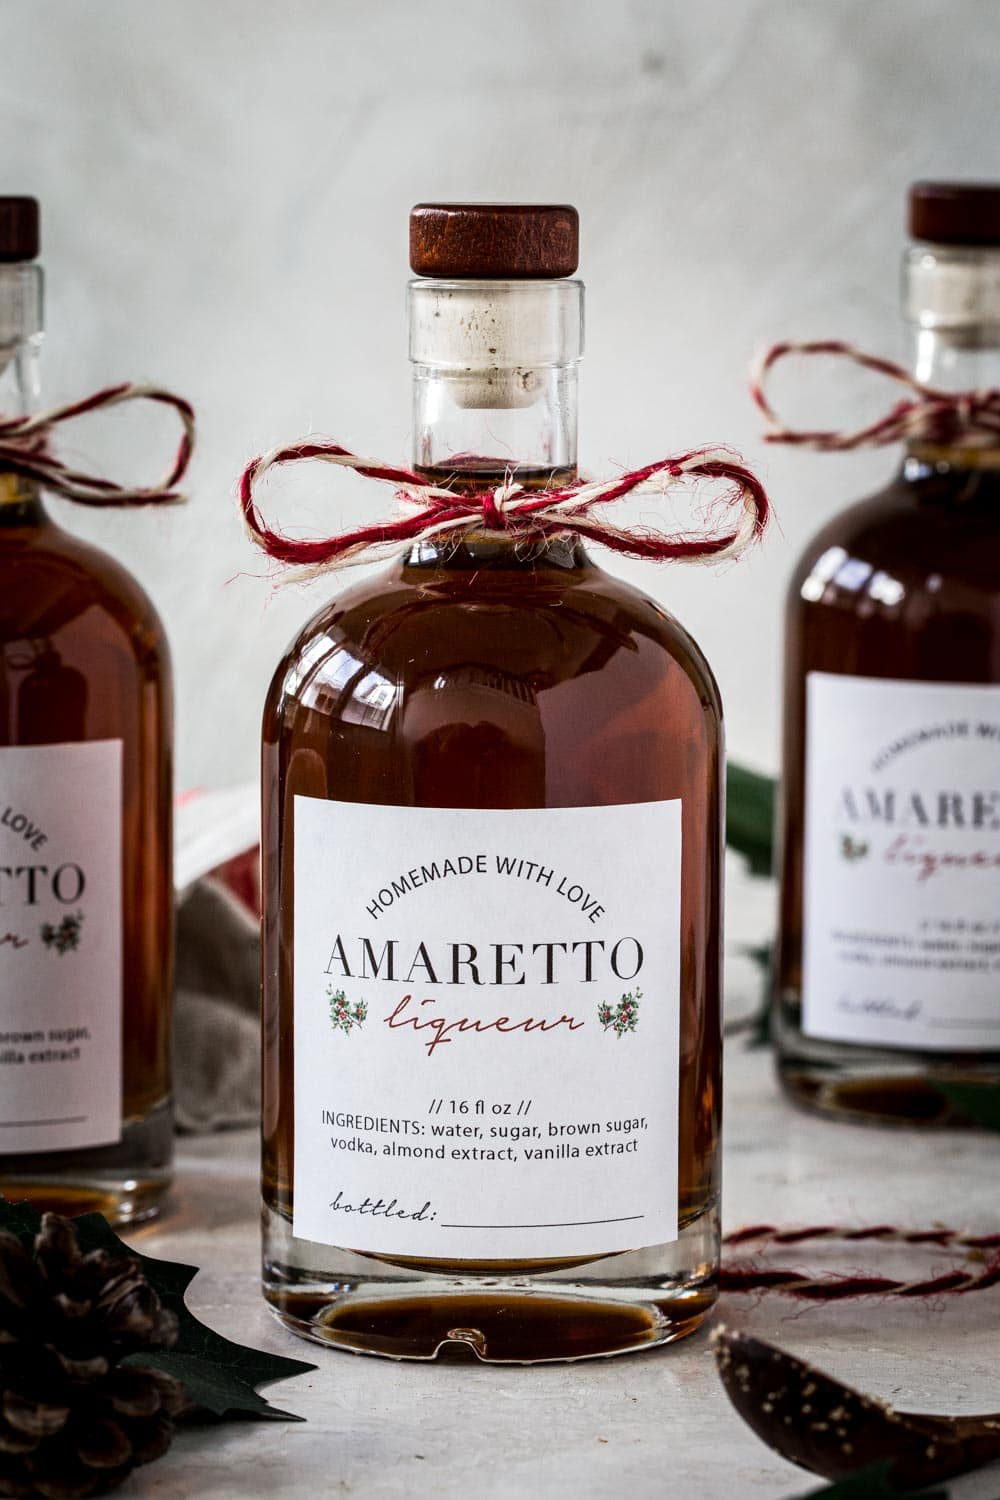 Homemade amaretto in glass bottles with homemade labels.